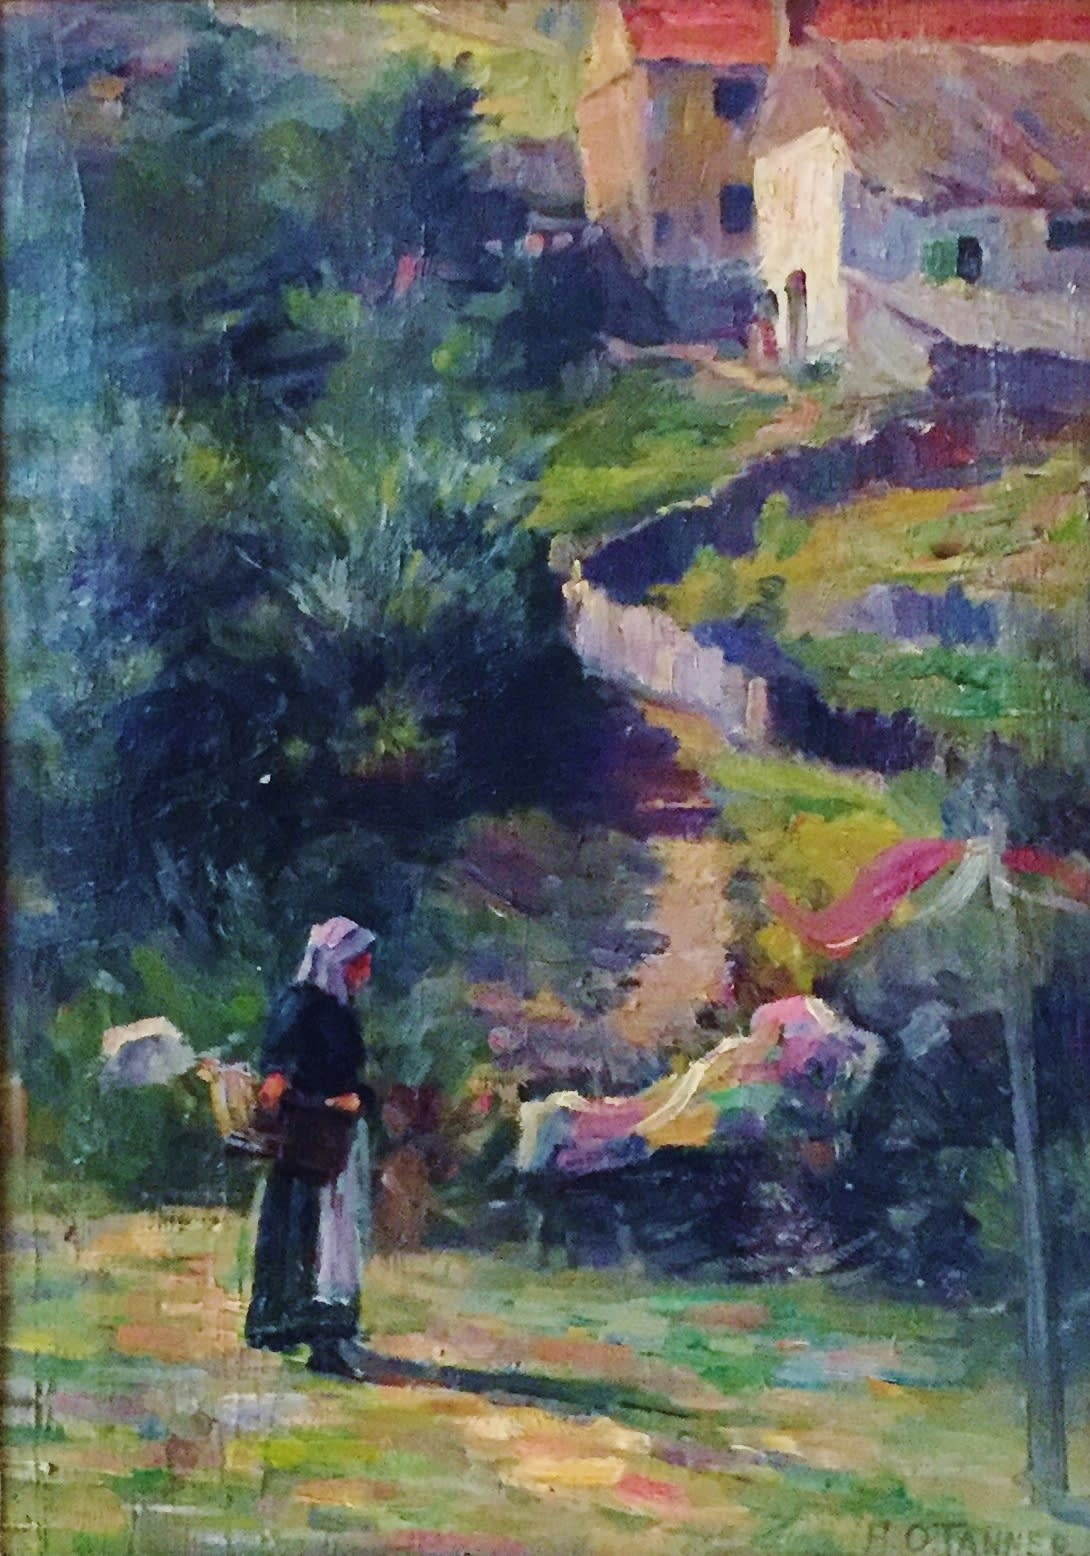 Henry Ossawa Tanner, Untitled, Landscape with female figure, c. 1888